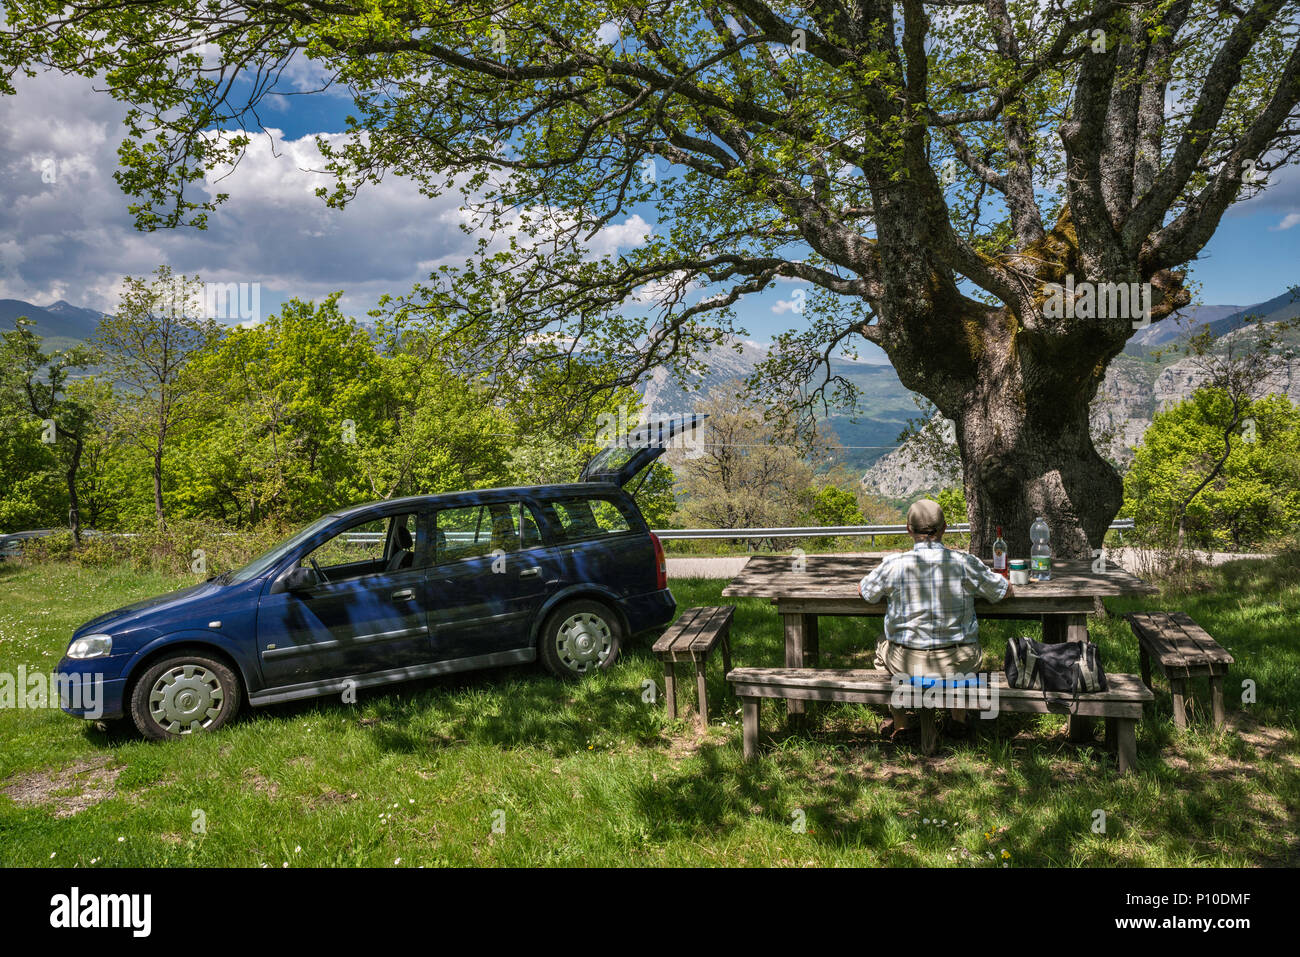 Man in his 60s picnicking at roadside table near town of San Lorenzo Bellizzi, Southern Apennines, Pollino National Park, Calabria, Italy - Stock Image